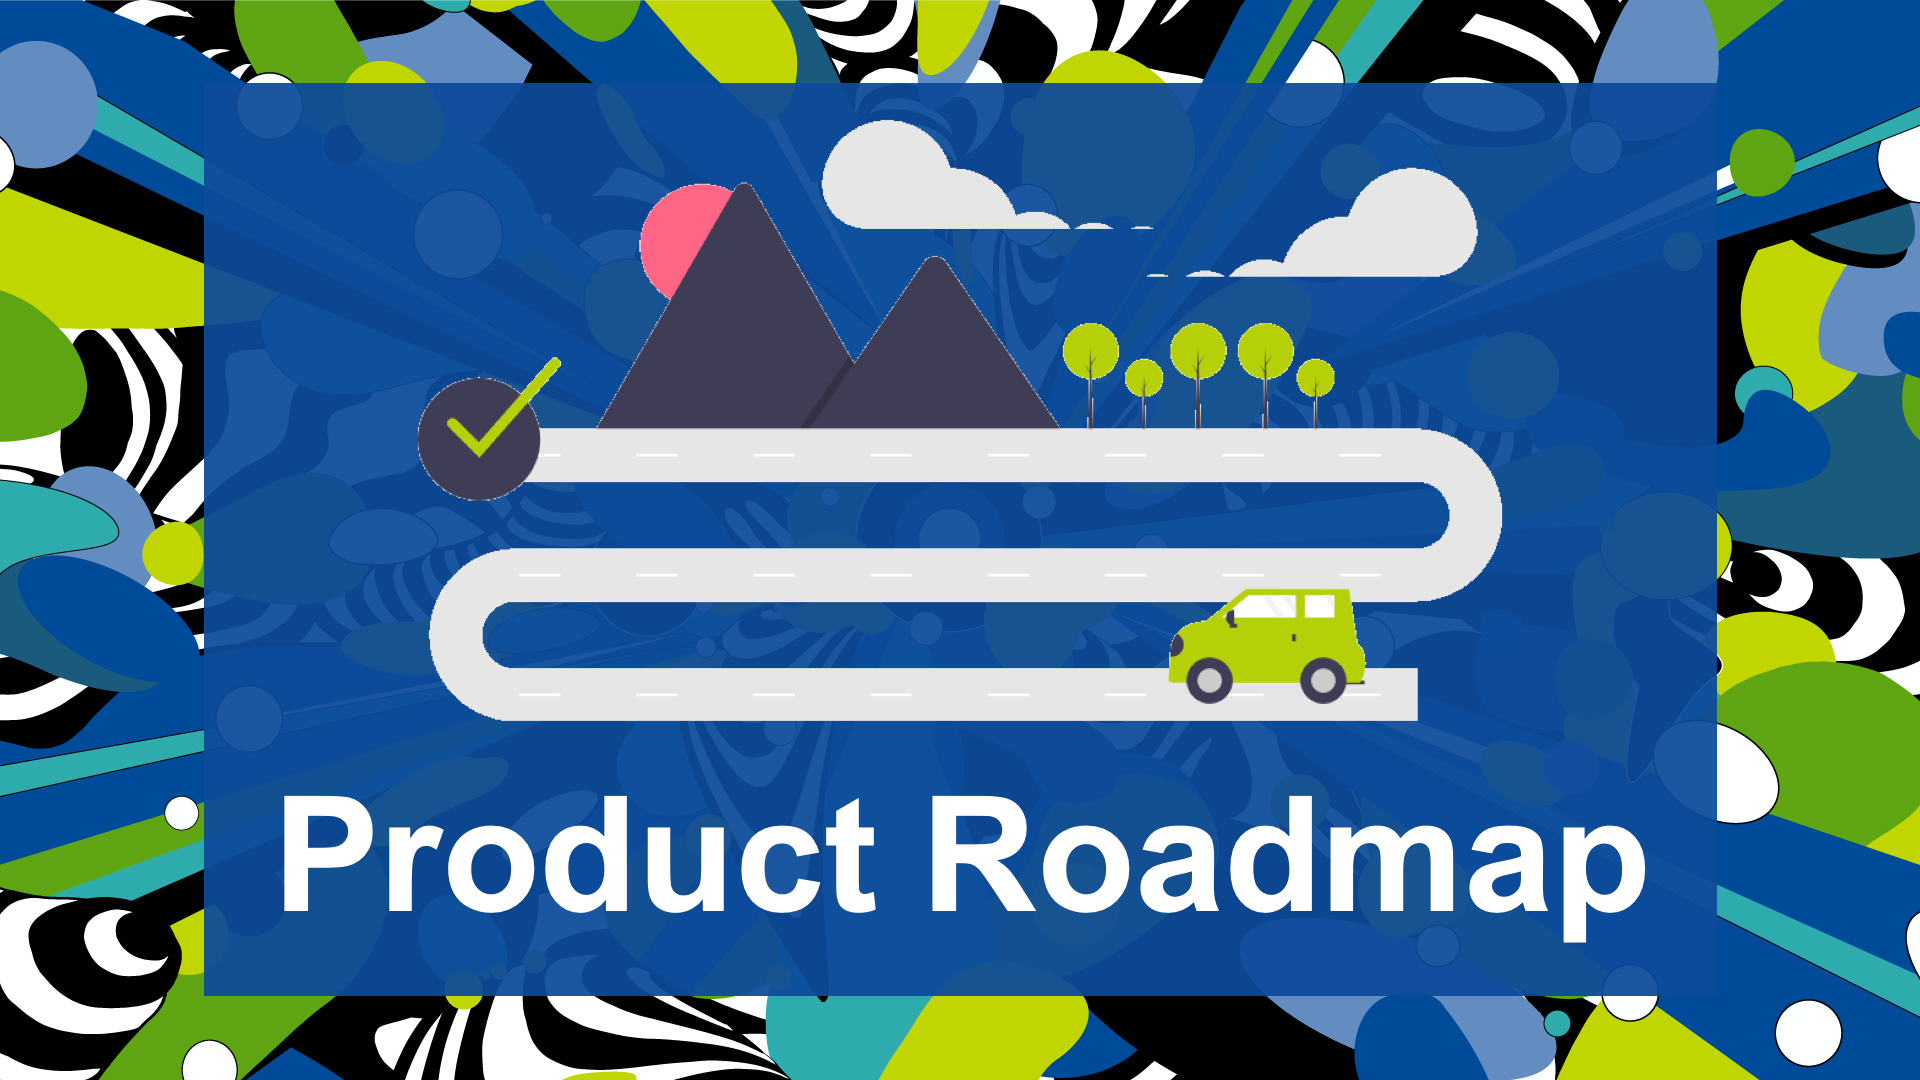 Product Roadmap